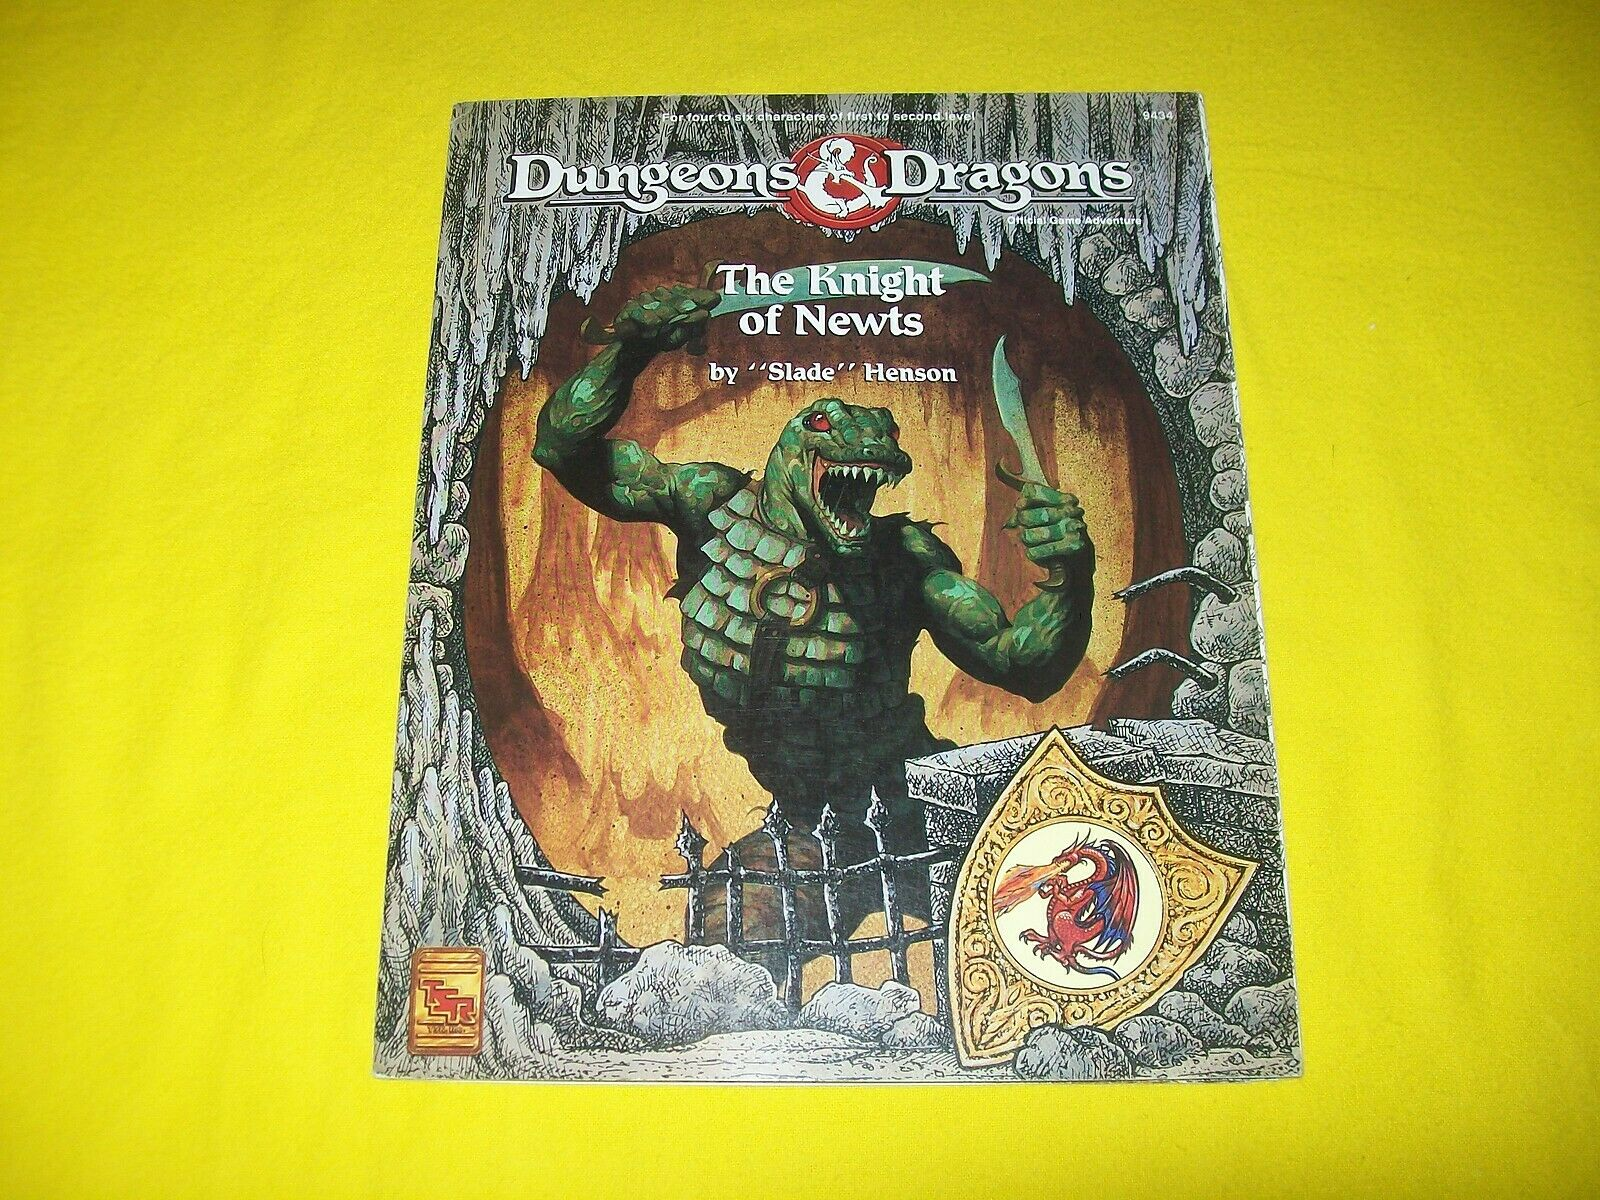 THE KNIGHT OF NEWTS DUNGEONS & DRAGONS TSR 9434 - 1 COMPLETE WITH STAND UPS